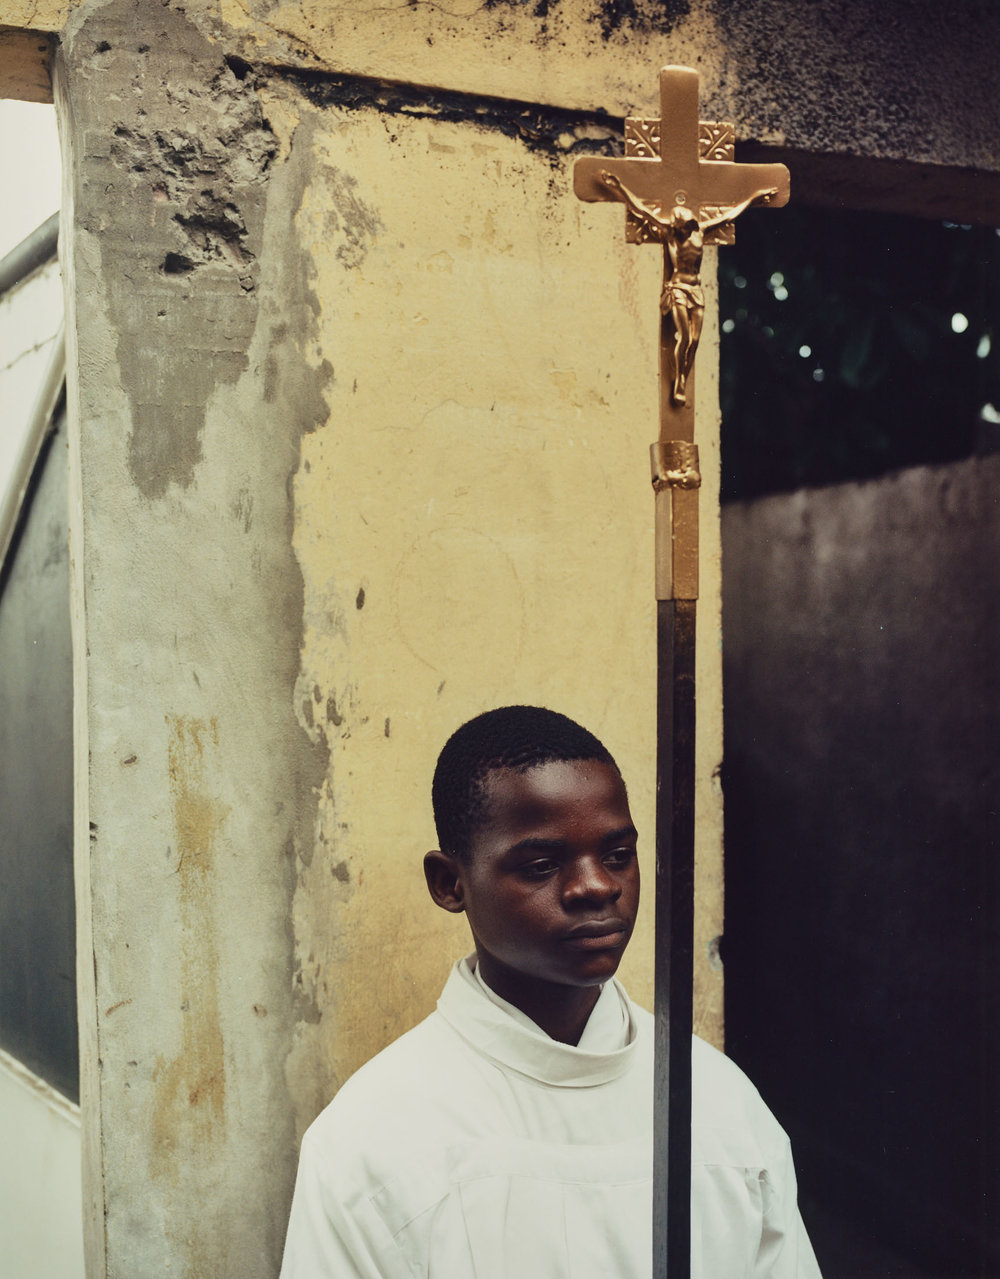 Muzina di Tata, E di Mwana   A young acolyte holds the cross of St. Dominique before Sunday service.